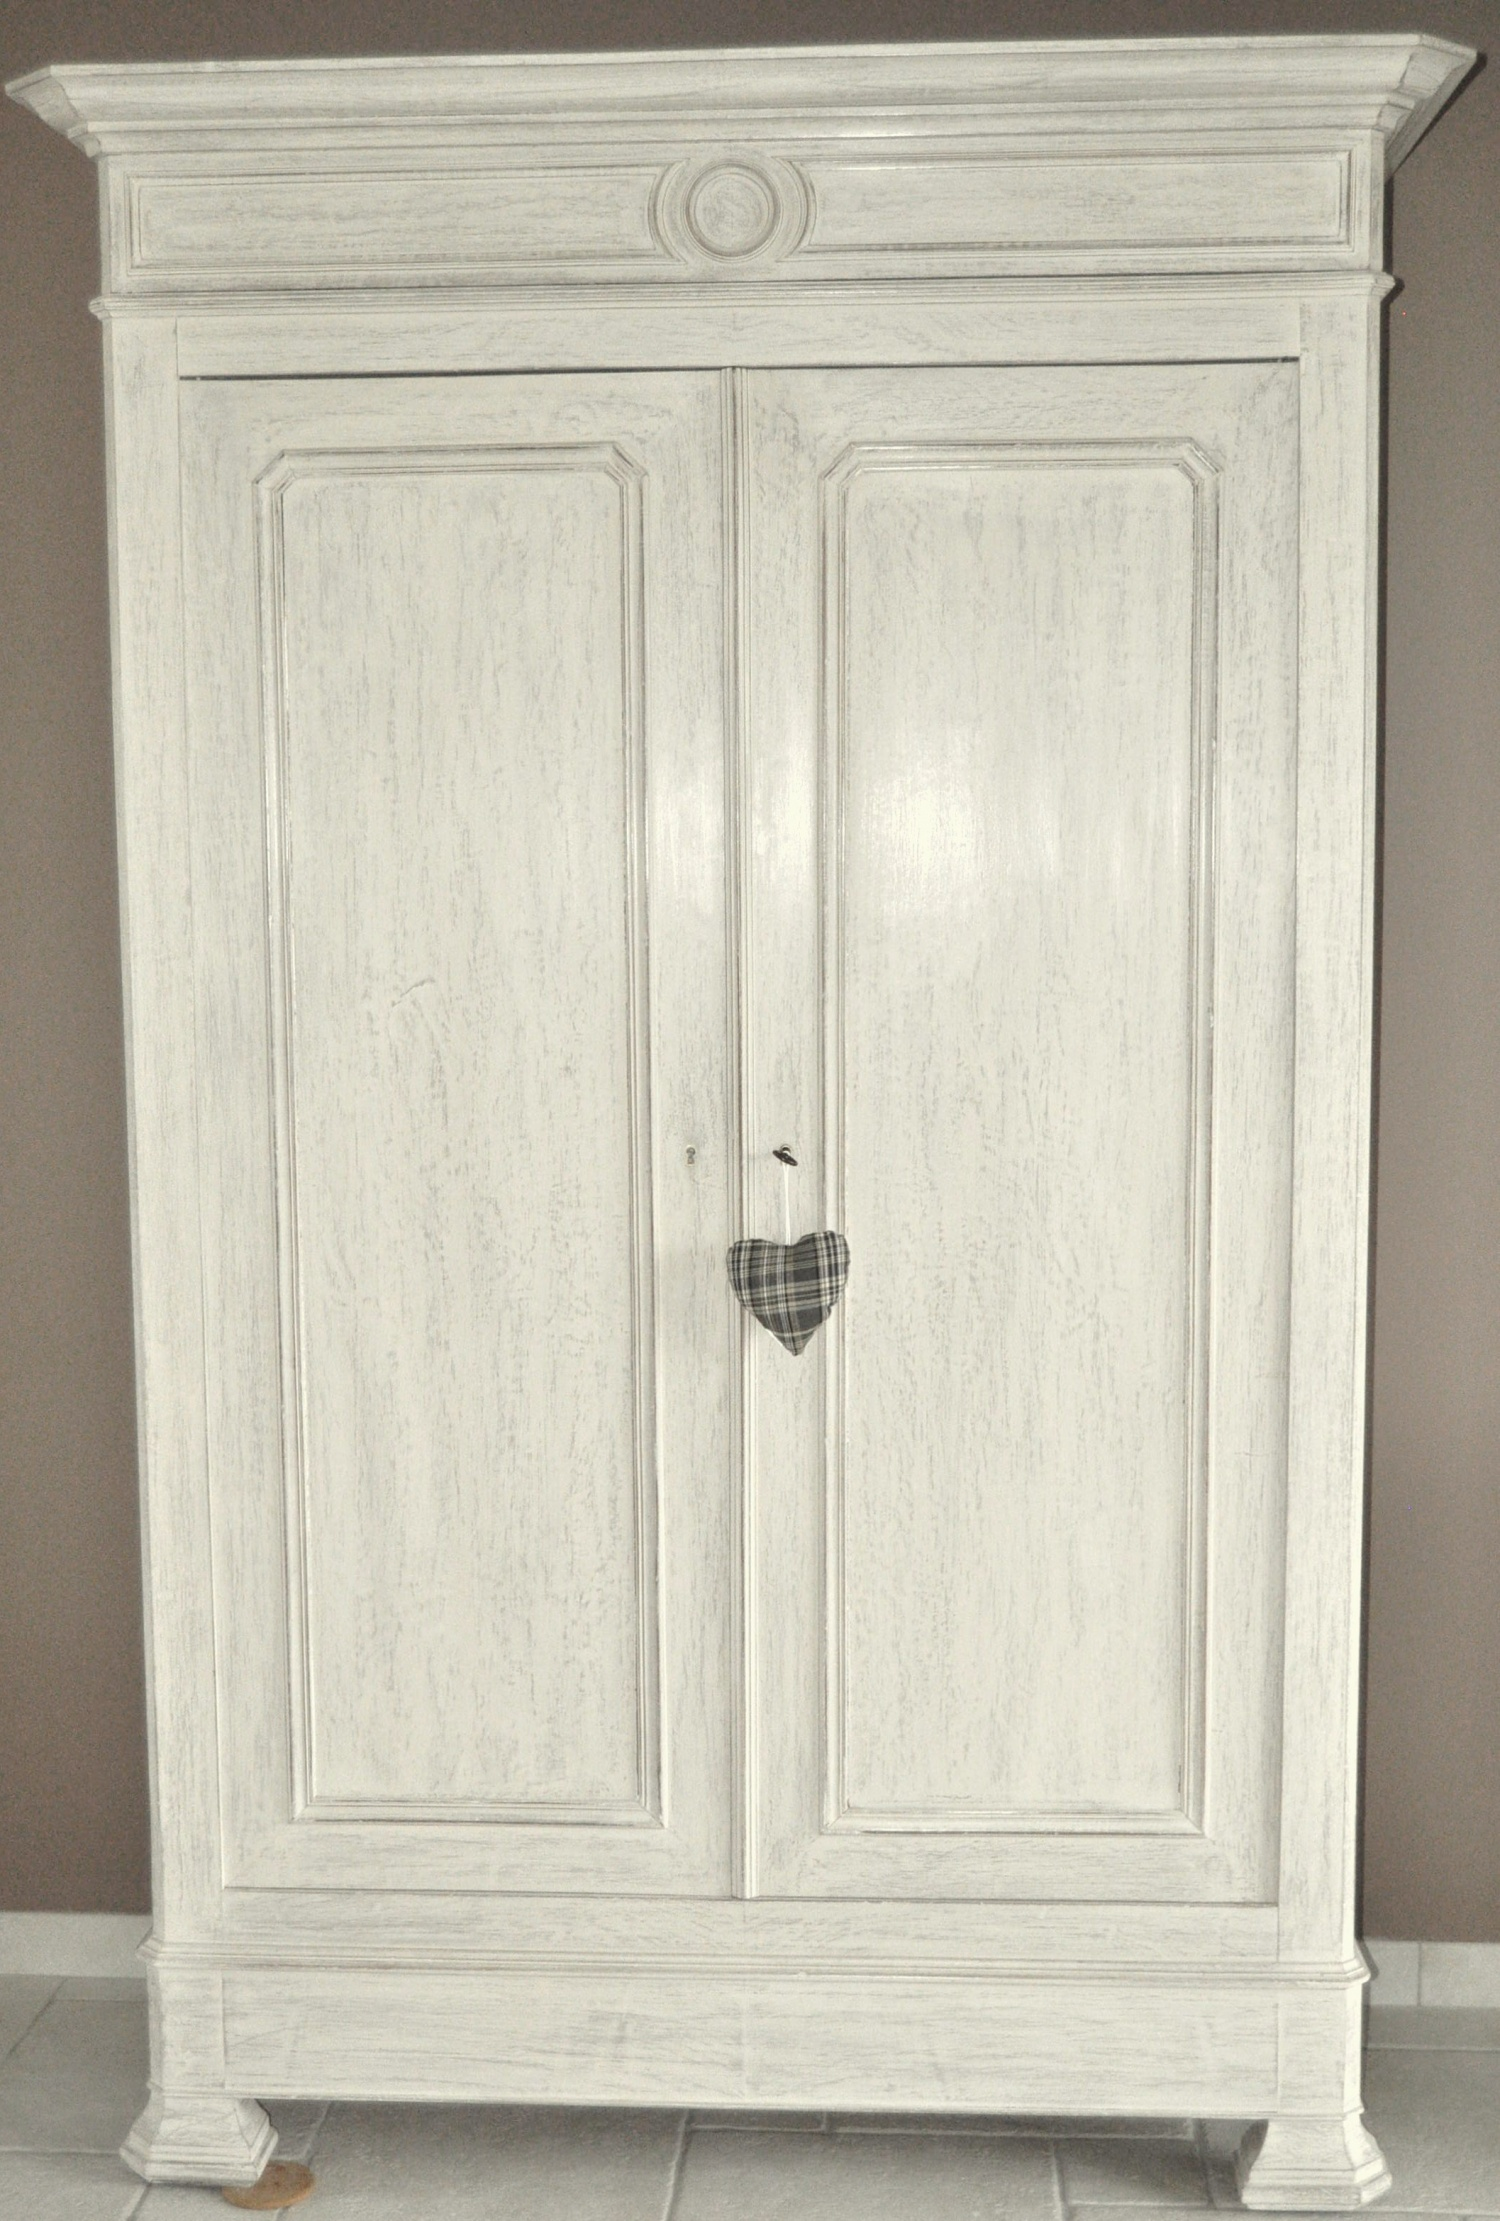 Armoire ancienne patin e taupe et gr ge - Renover une armoire ancienne ...